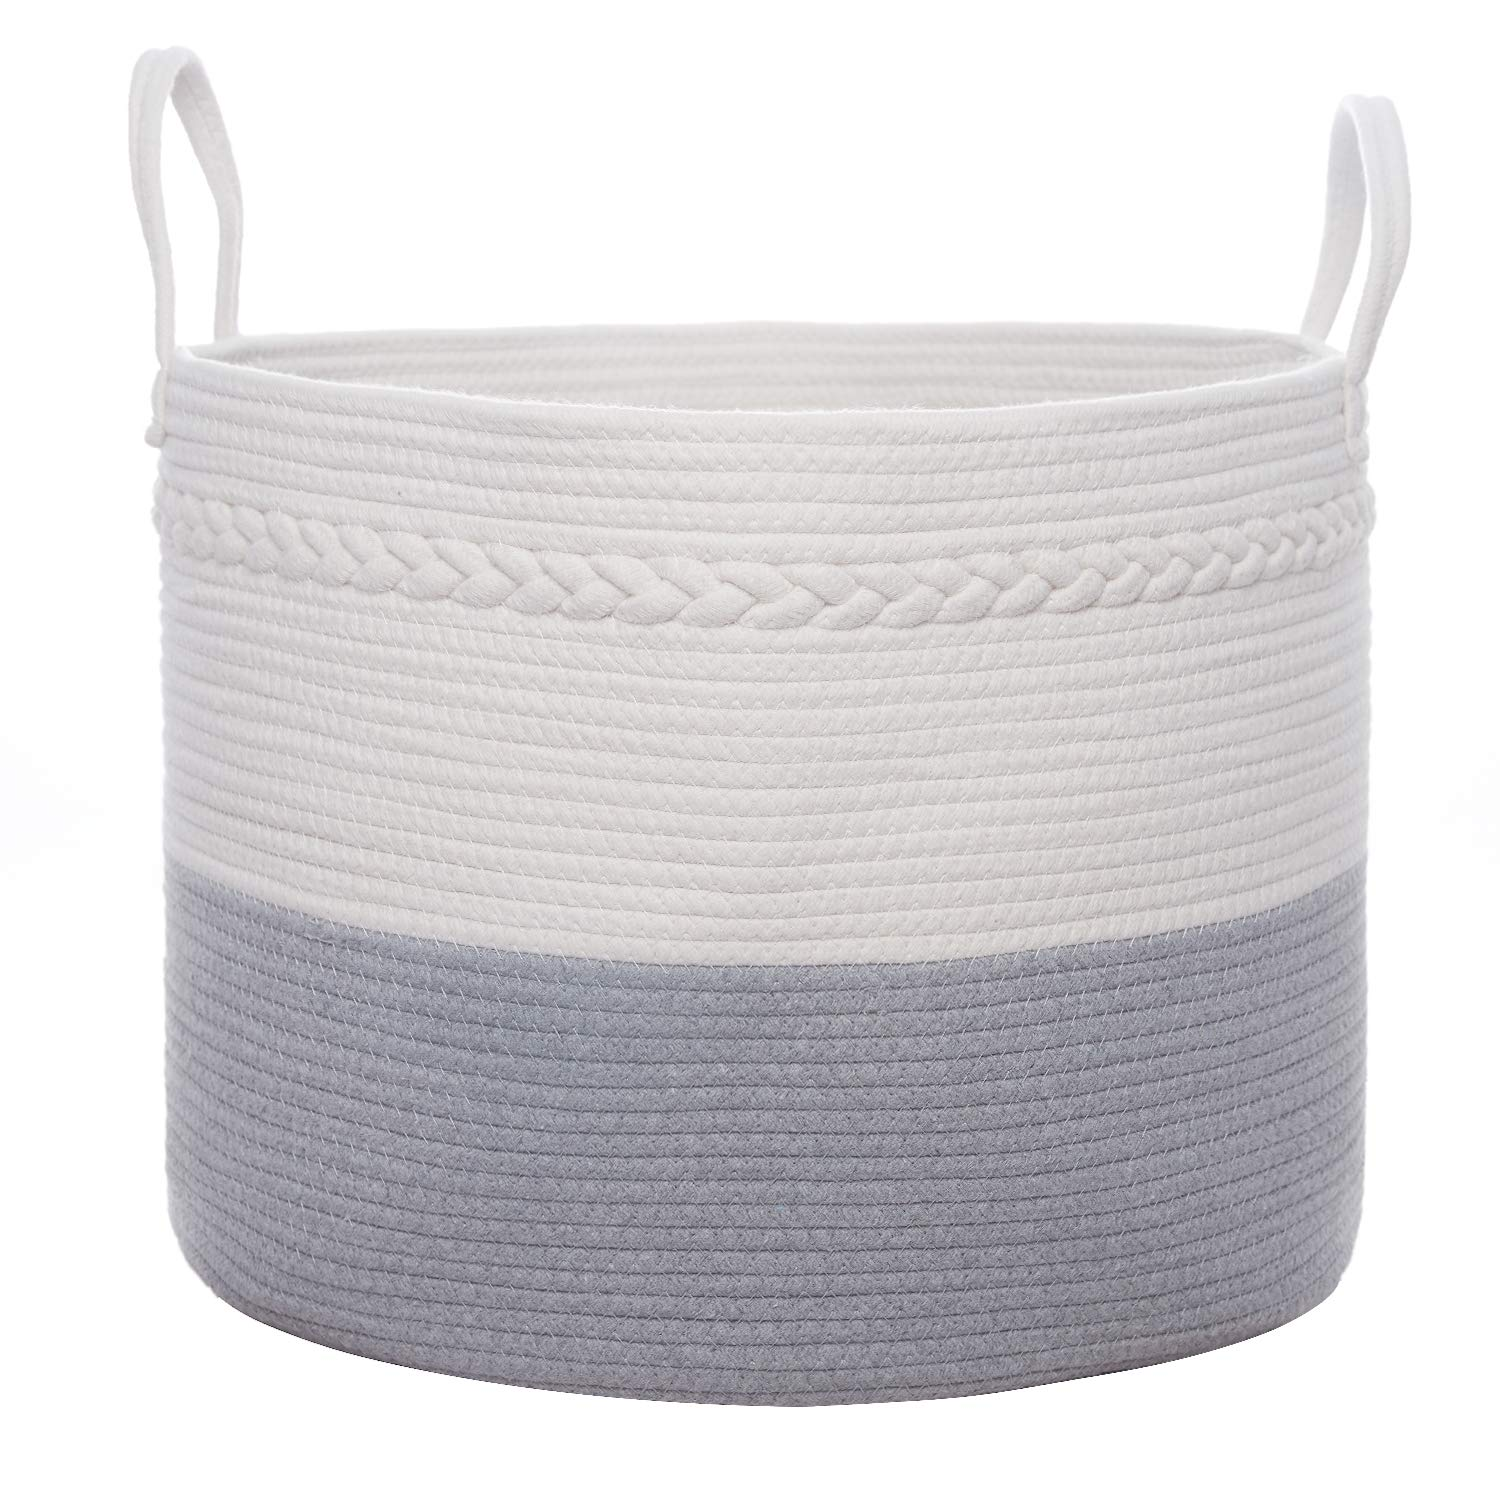 "Large Cotton Rope Basket, 20"" x 14"" Laundry Blanket Storage Basket with Easy-Carry Sturdy Handles and Decorative and Braid, Baby Nursery Bin for Home Décor and Organizing"